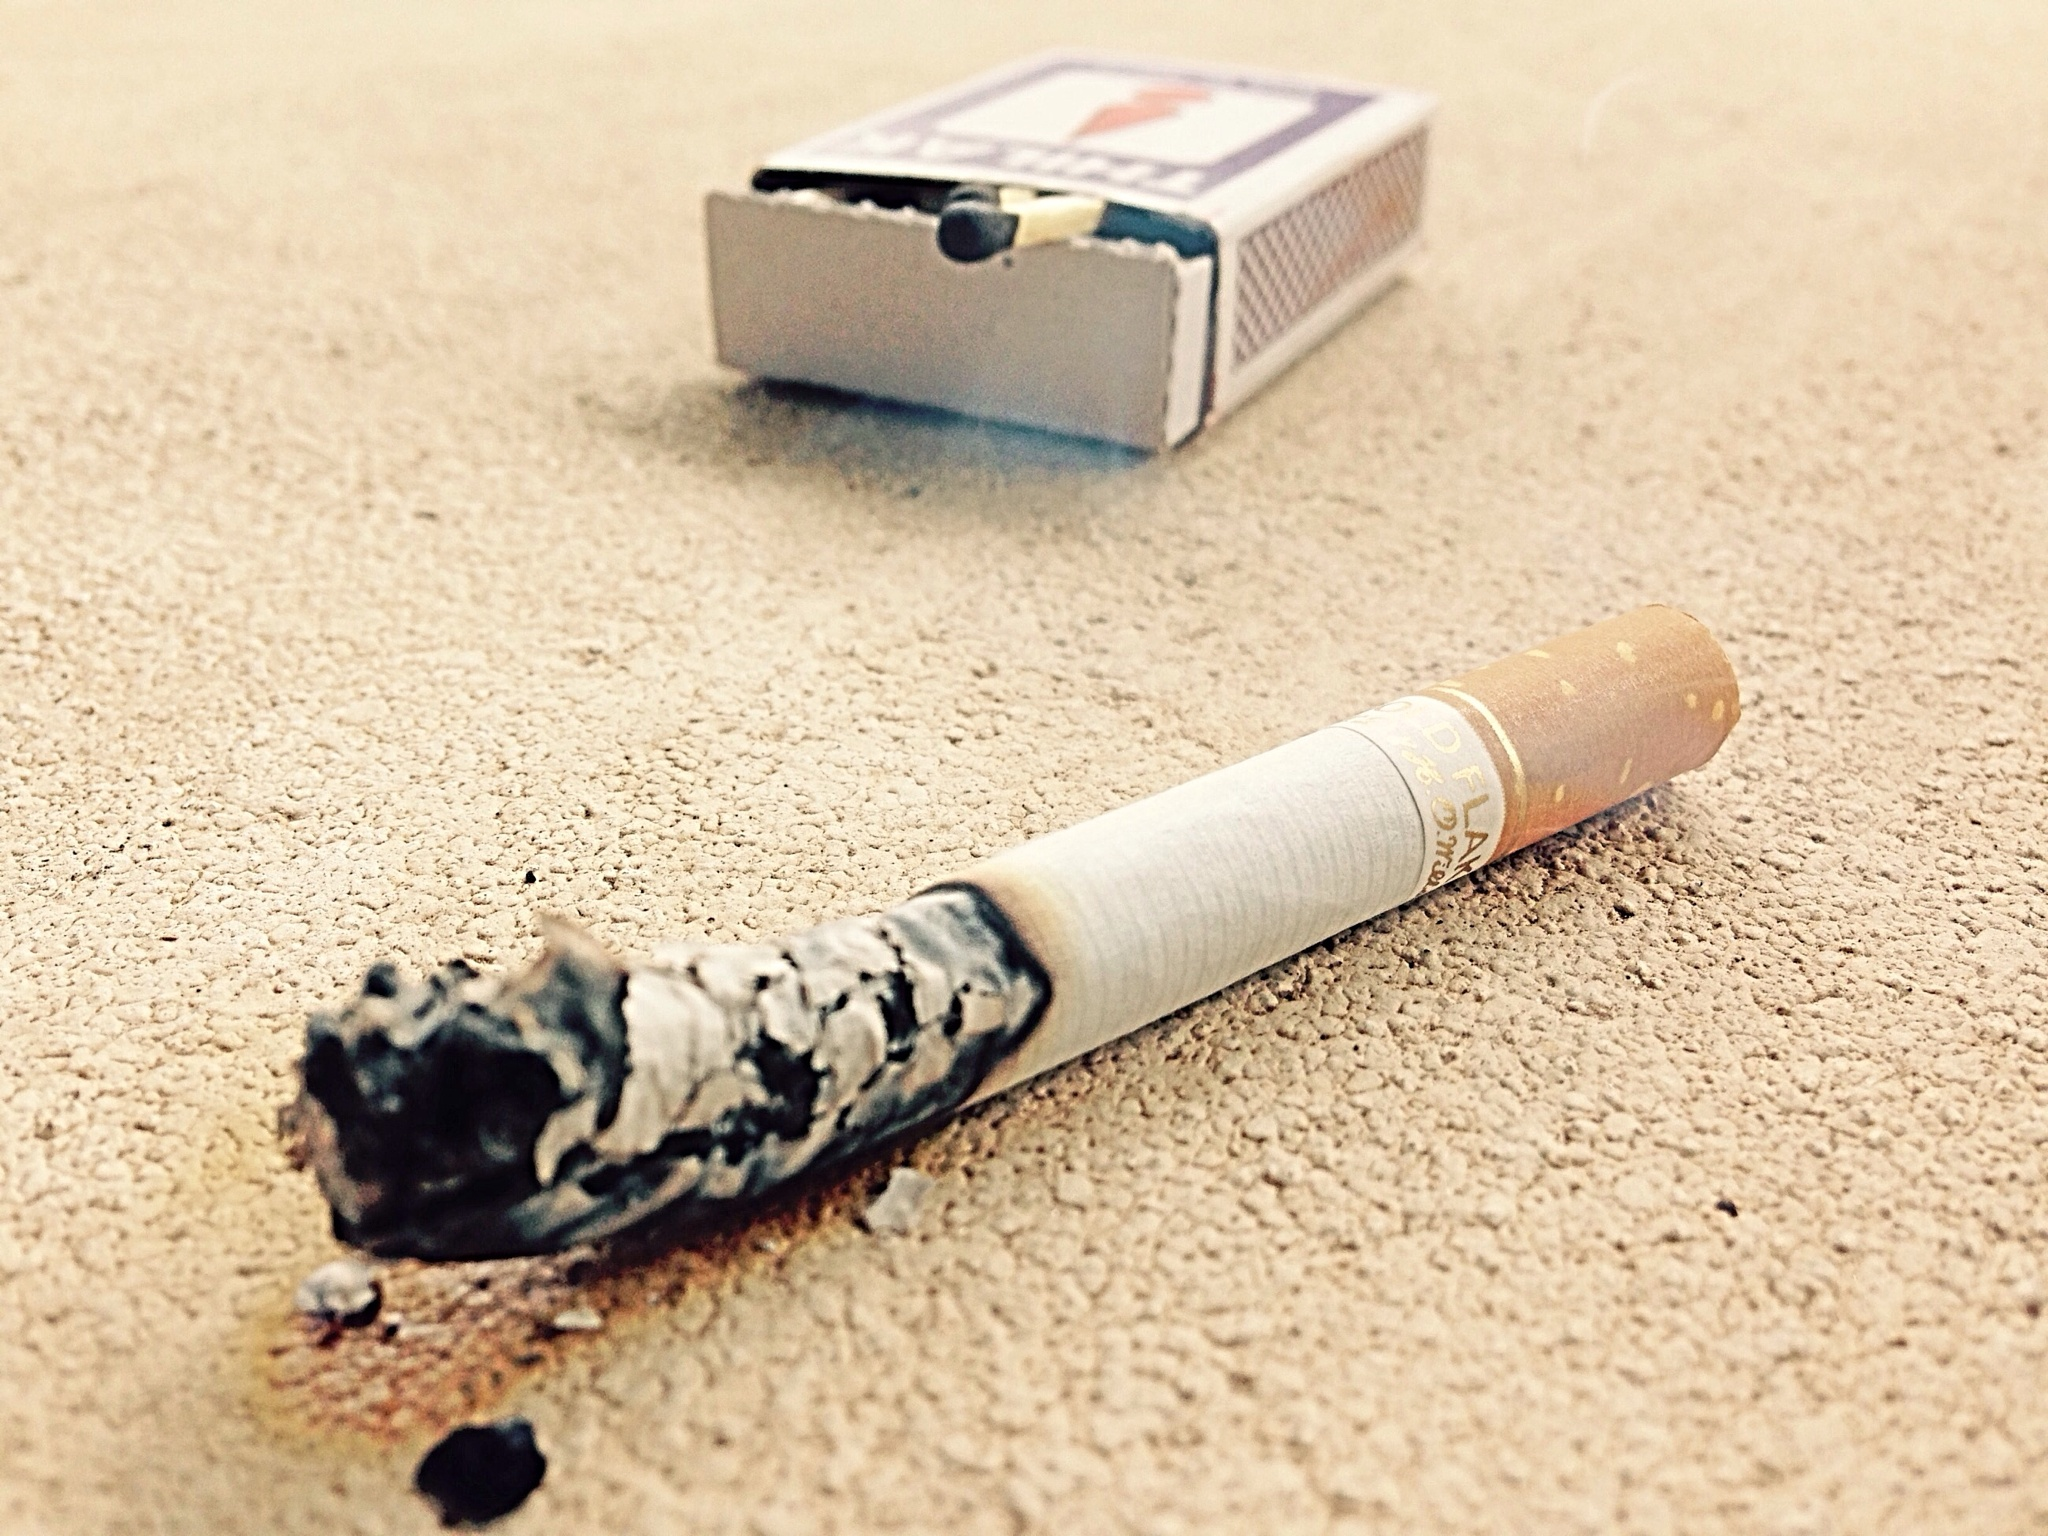 smoking is injurious to health by Charles Paul